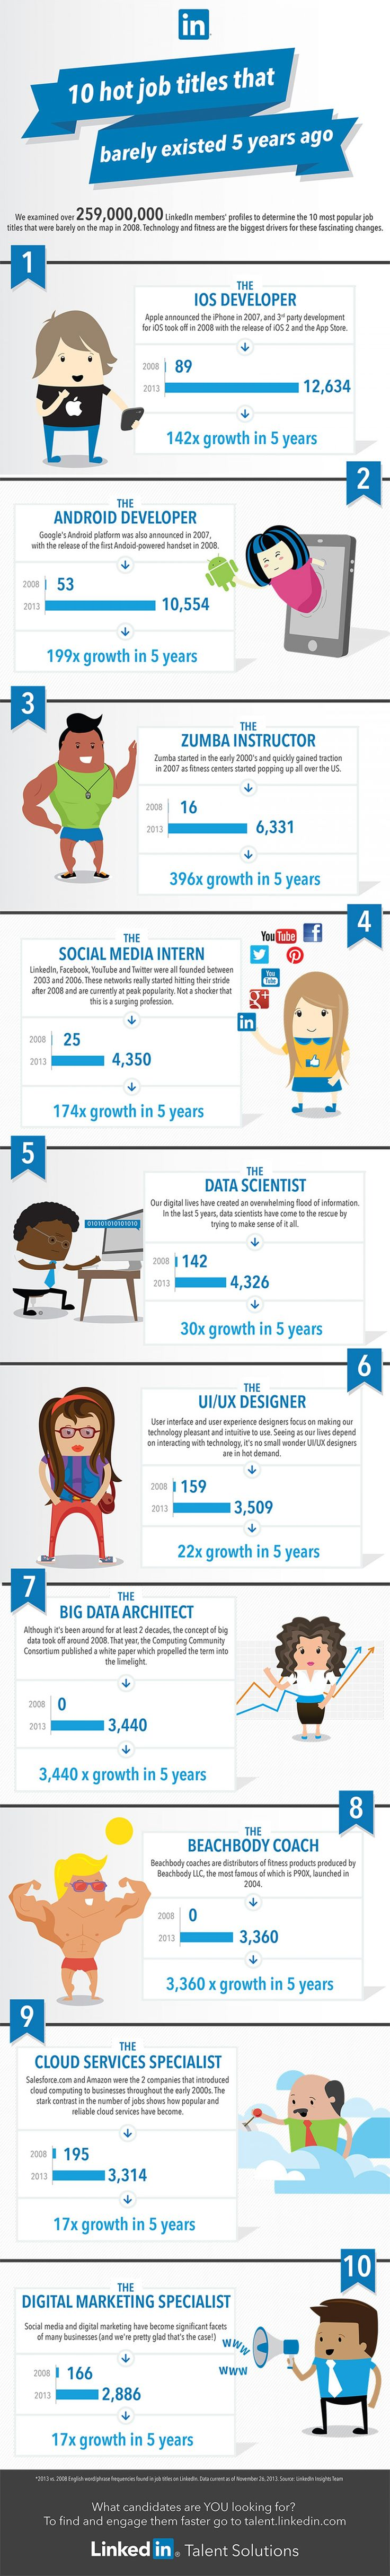 17 best images about career buzz interview student 1 user experience designer developer job site search for job vacancies across top companies